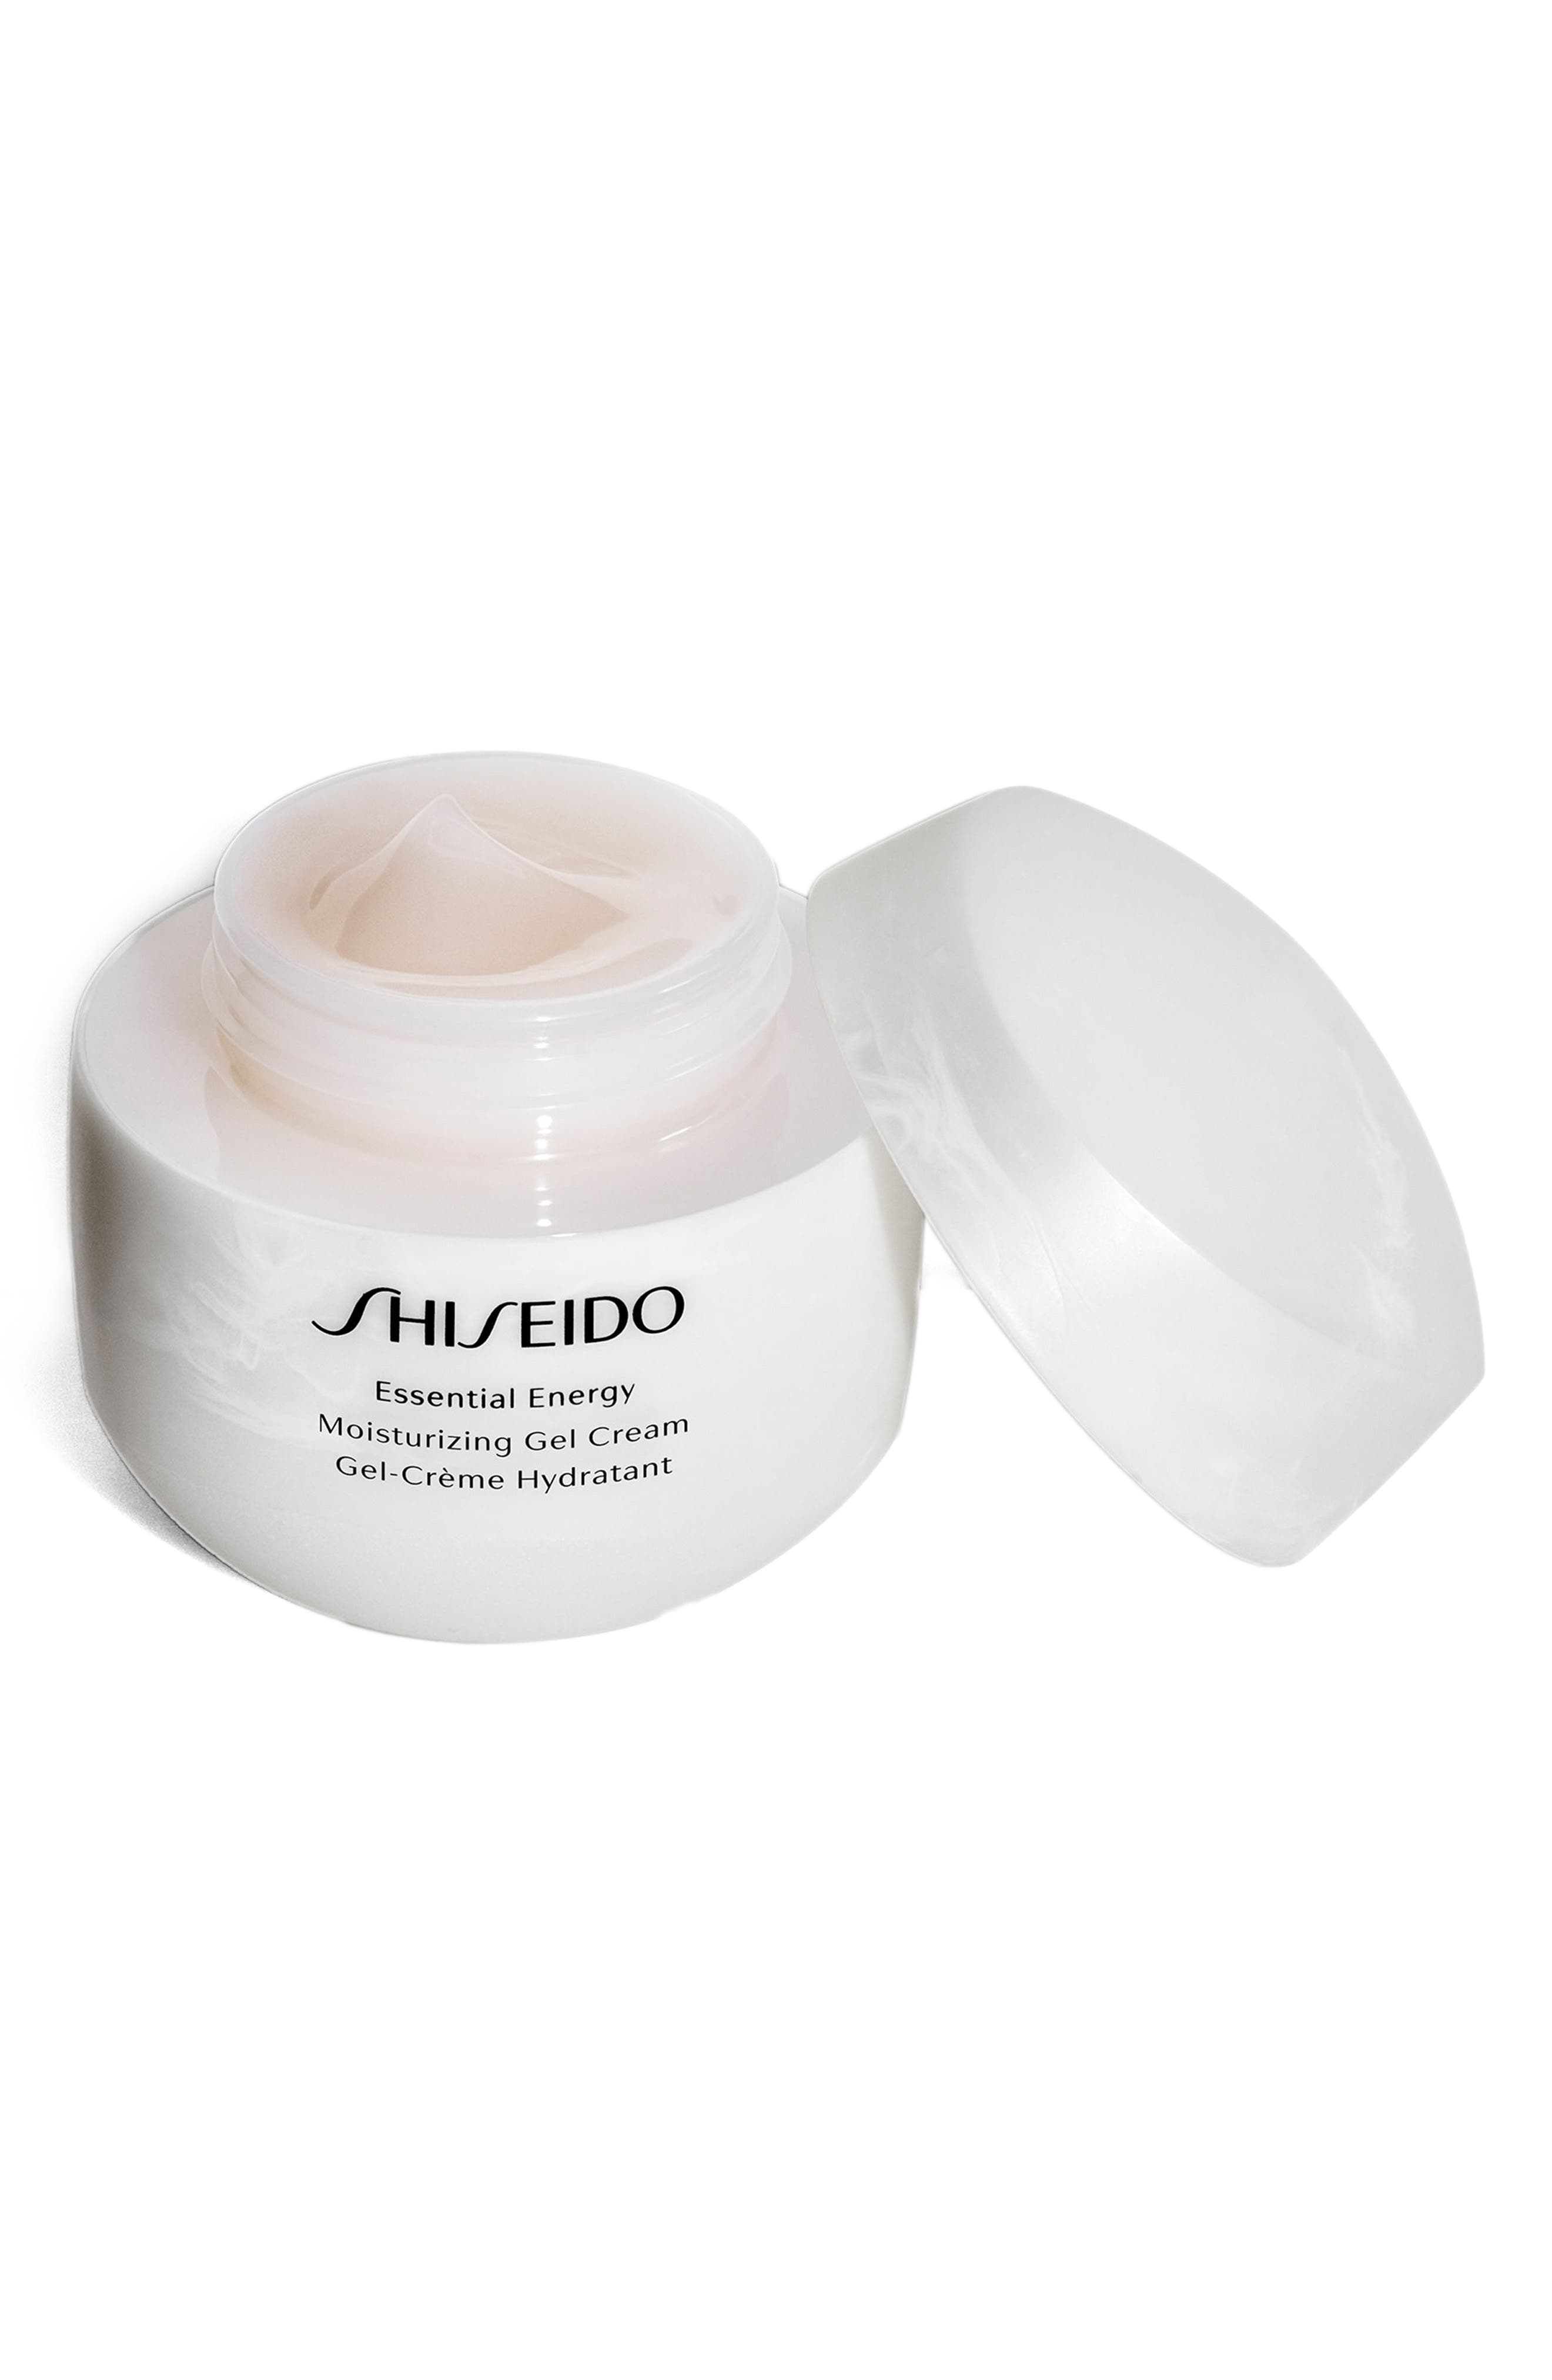 SHISEIDO,                             Essential Energy Moisturizing Gel Cream,                             Alternate thumbnail 2, color,                             NO COLOR